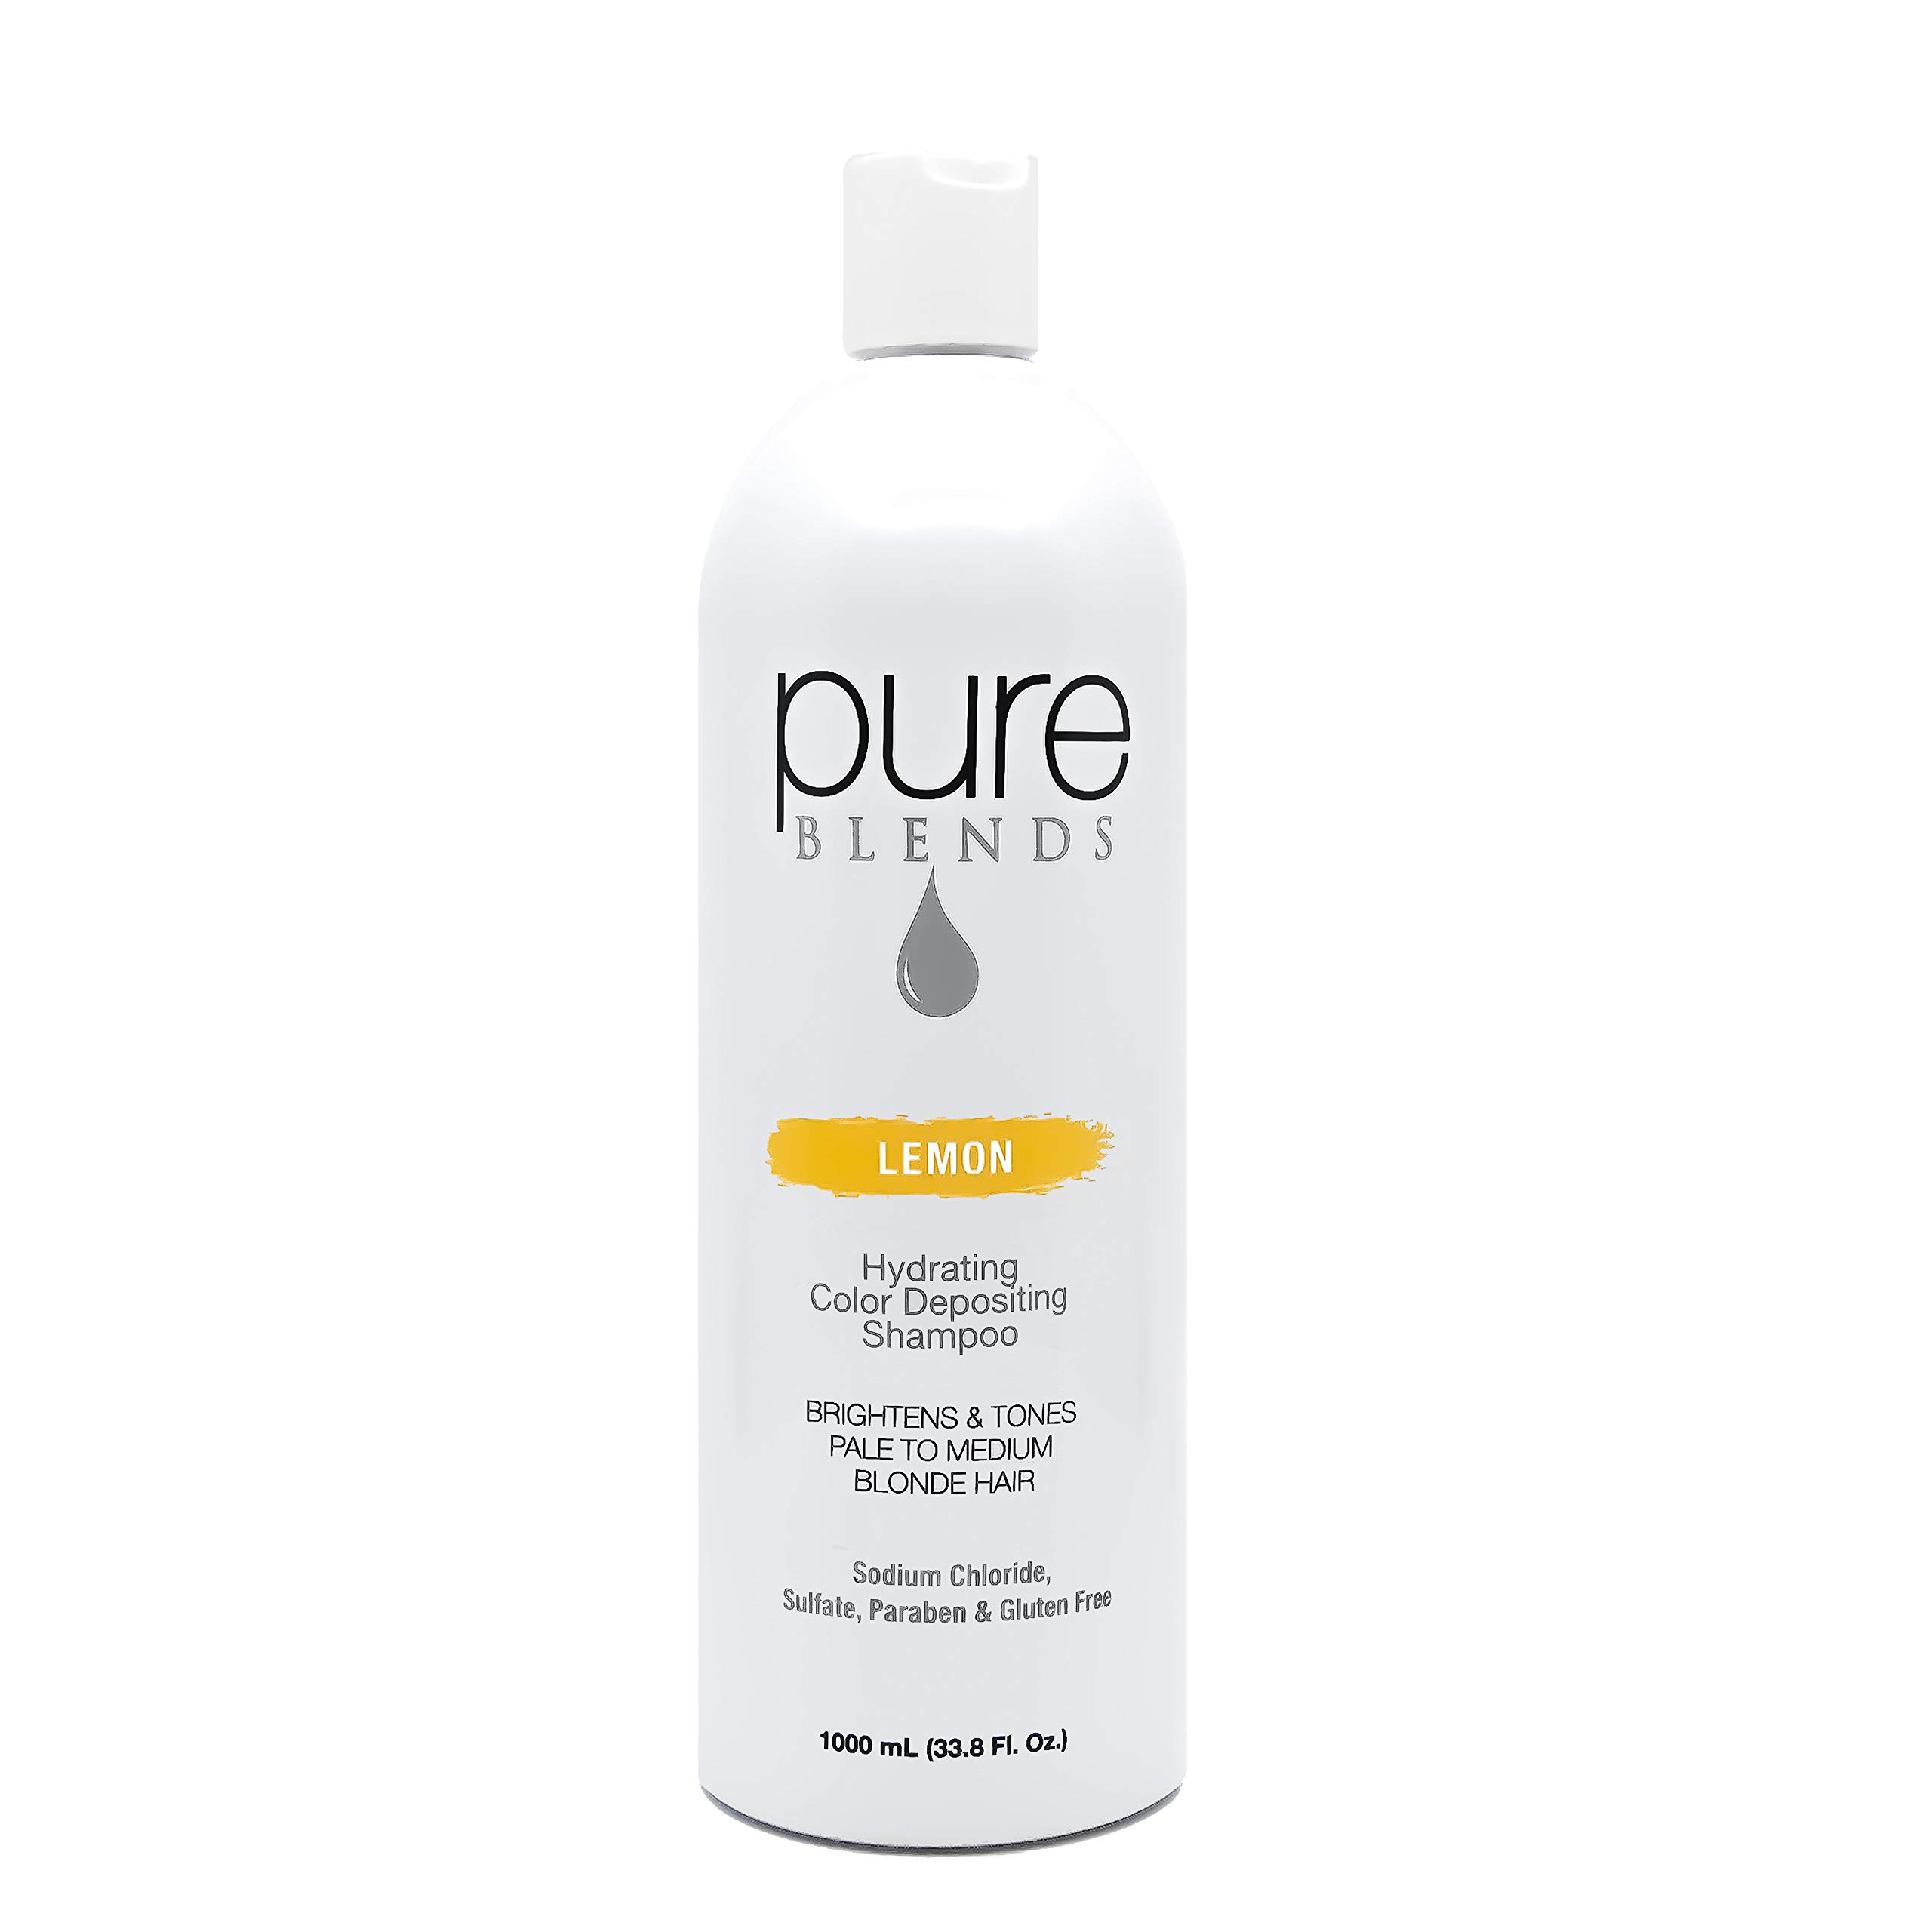 Pure Blends Hydrating Color Depositing Shampoo - Lemon (Pale to Medium Blonde Hair) 33.8 Ounce - Salon Quality by Pure Blends